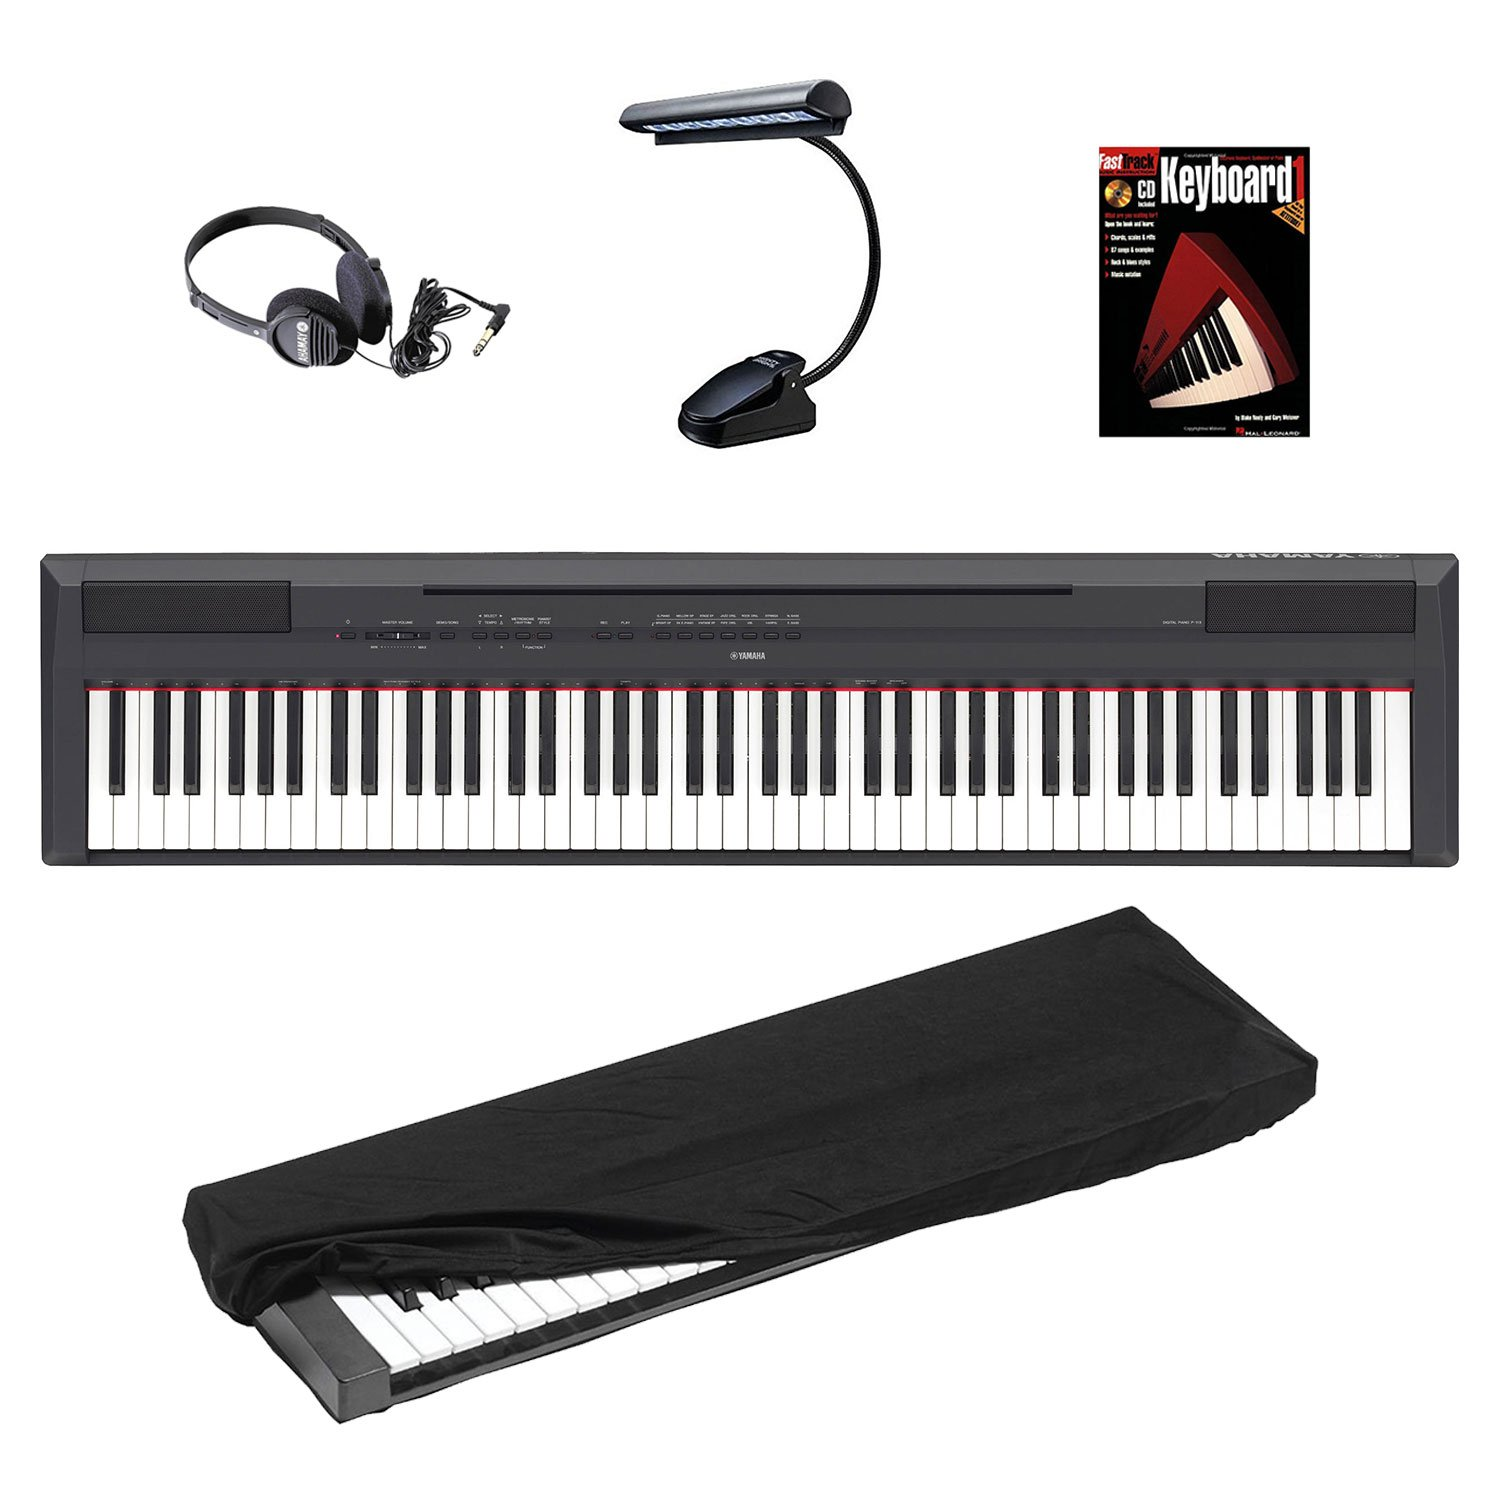 Yamaha P Series P105B 88-Key Digital Piano with Mighty Bright LED Music Book Light, JVC Full-Size Headphones, 88-Key Keyboard Dust Cover & FastTrack Keyboard Method Starter Pack